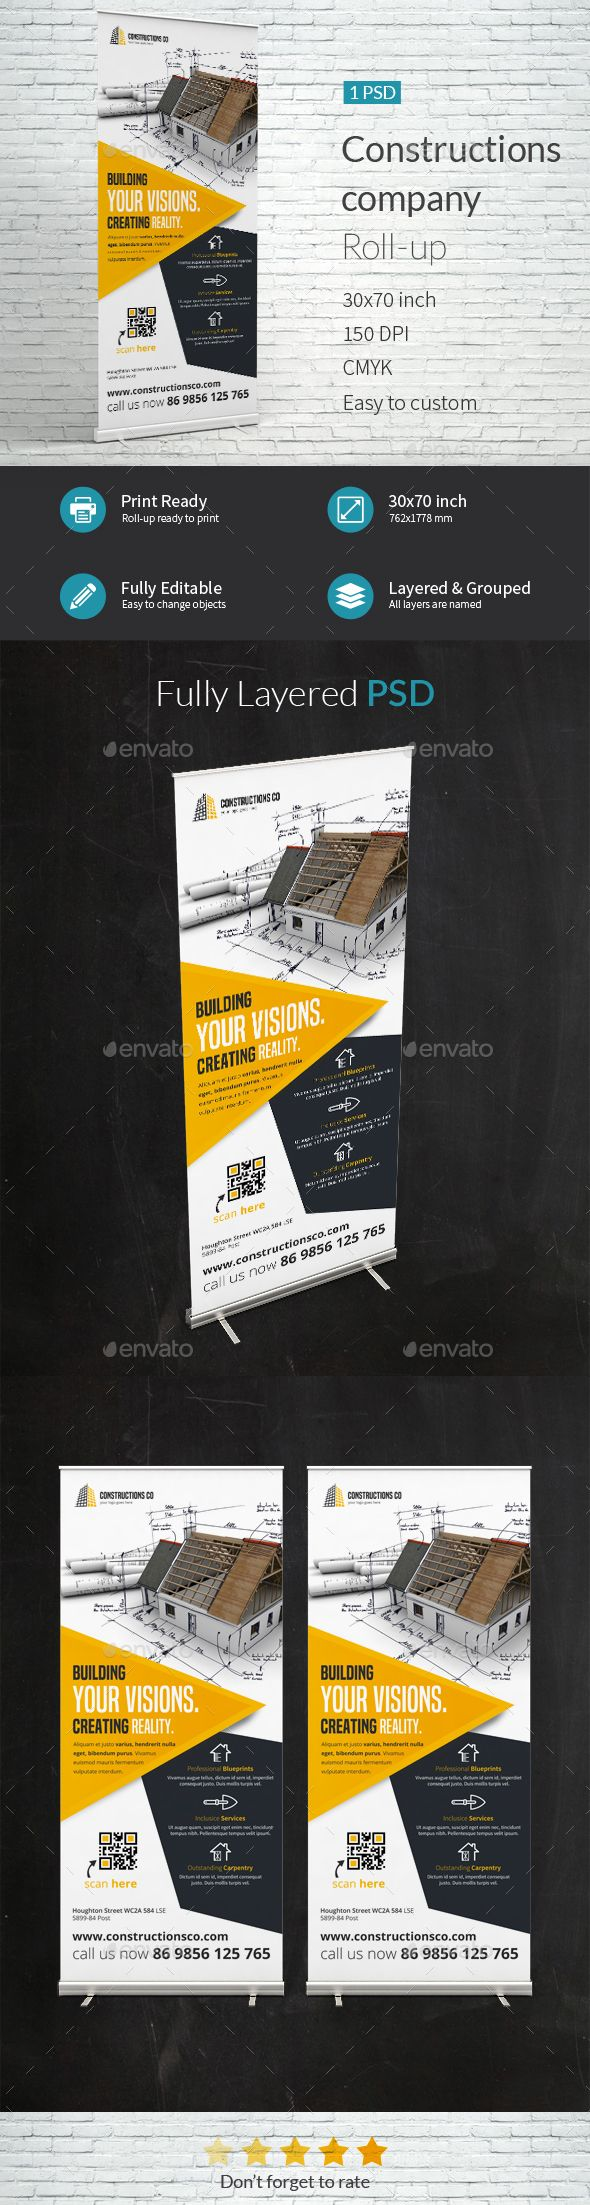 Construction Company Roll-up Template PSD. Download here: http://graphicriver.net/item/construction-company-rollup-template/15796329?ref=ksioks